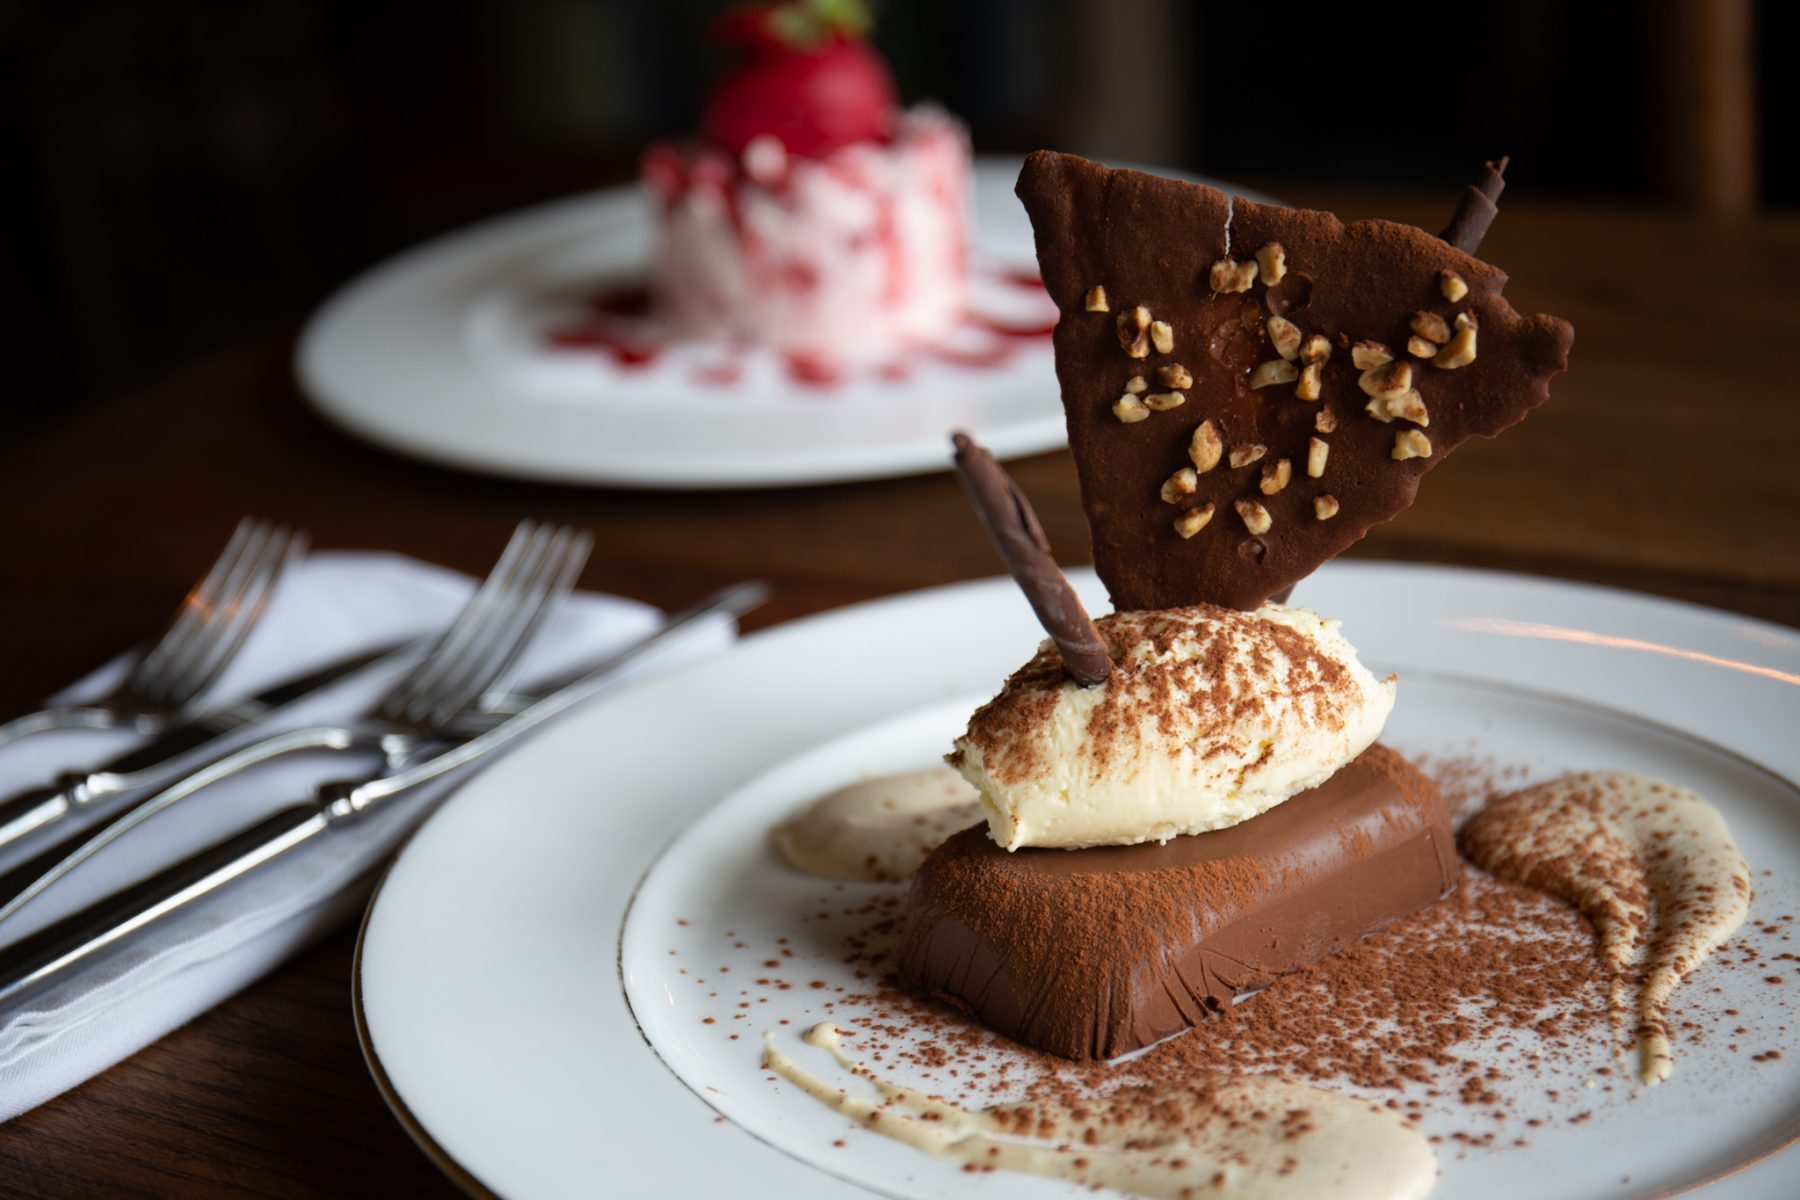 A dessert dish from The Old Post in Chesterfield - brand photography